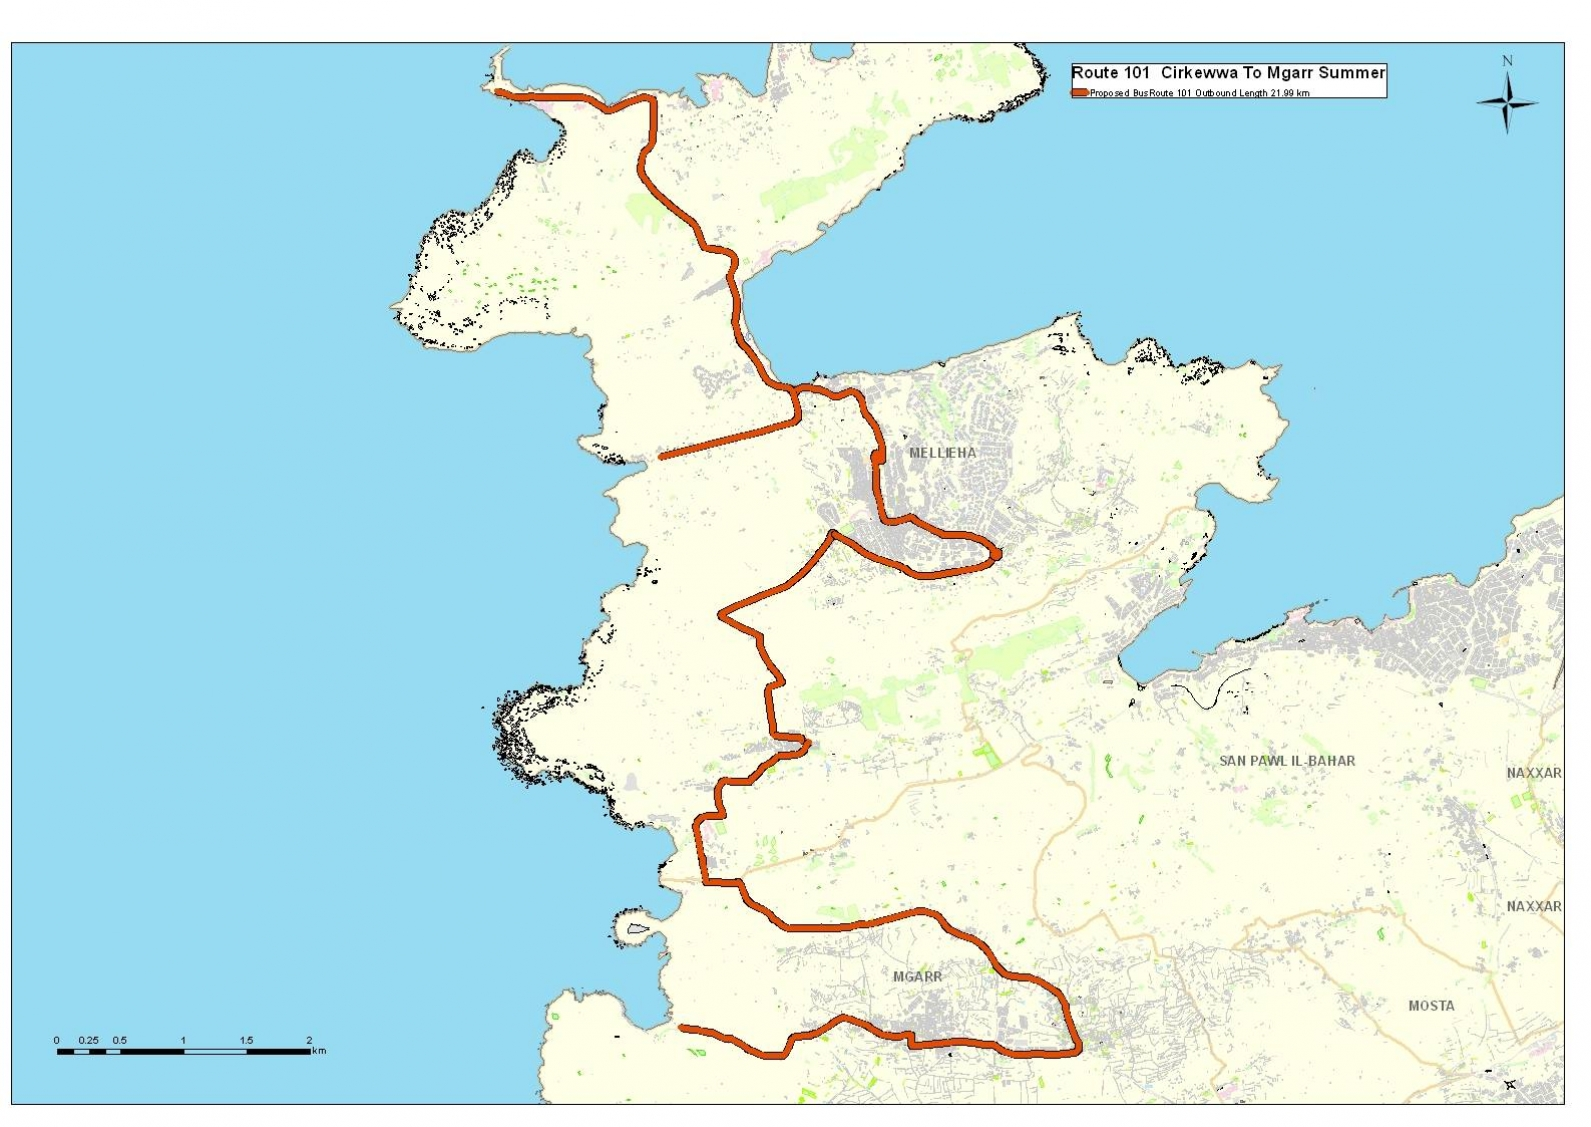 Land-current-network-routes-and-schedules-Summer-routes-7